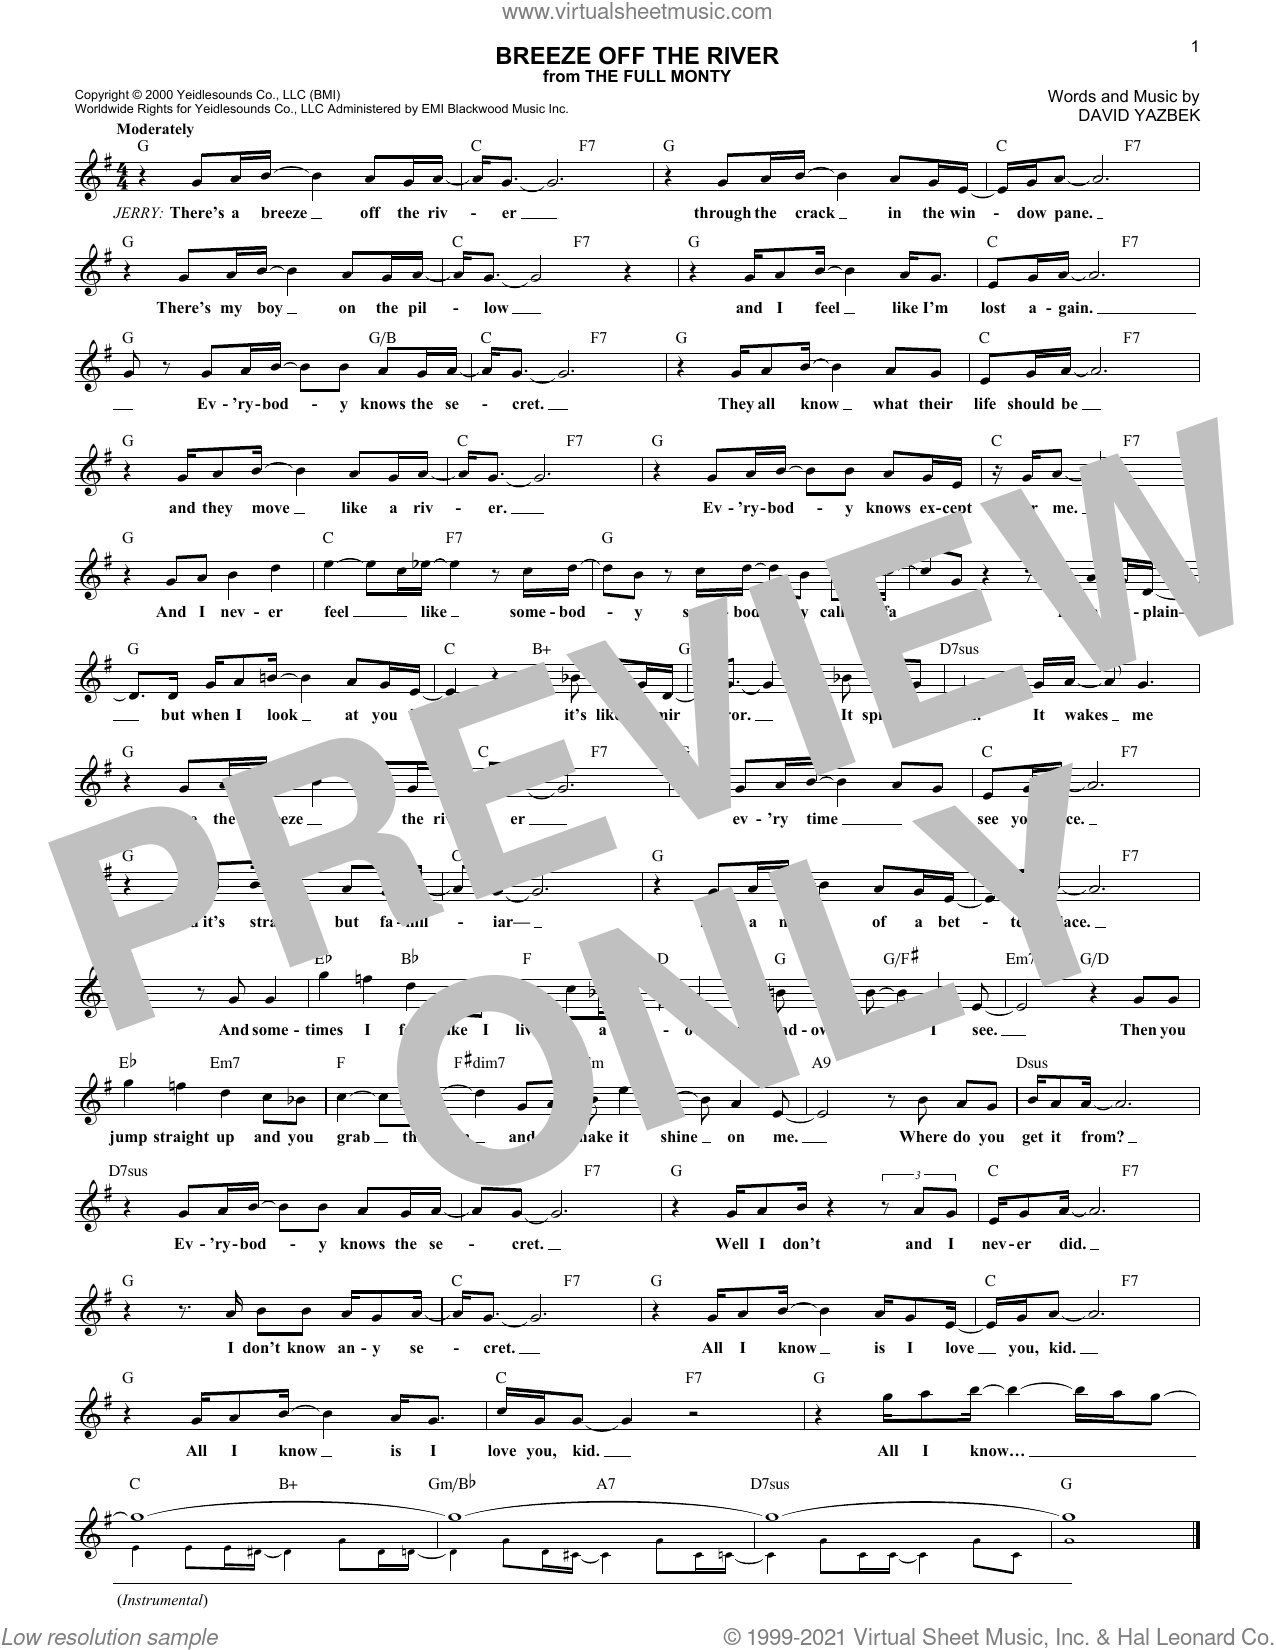 Breeze Off The River sheet music for voice and other instruments (fake book) by David Yazbek, intermediate skill level